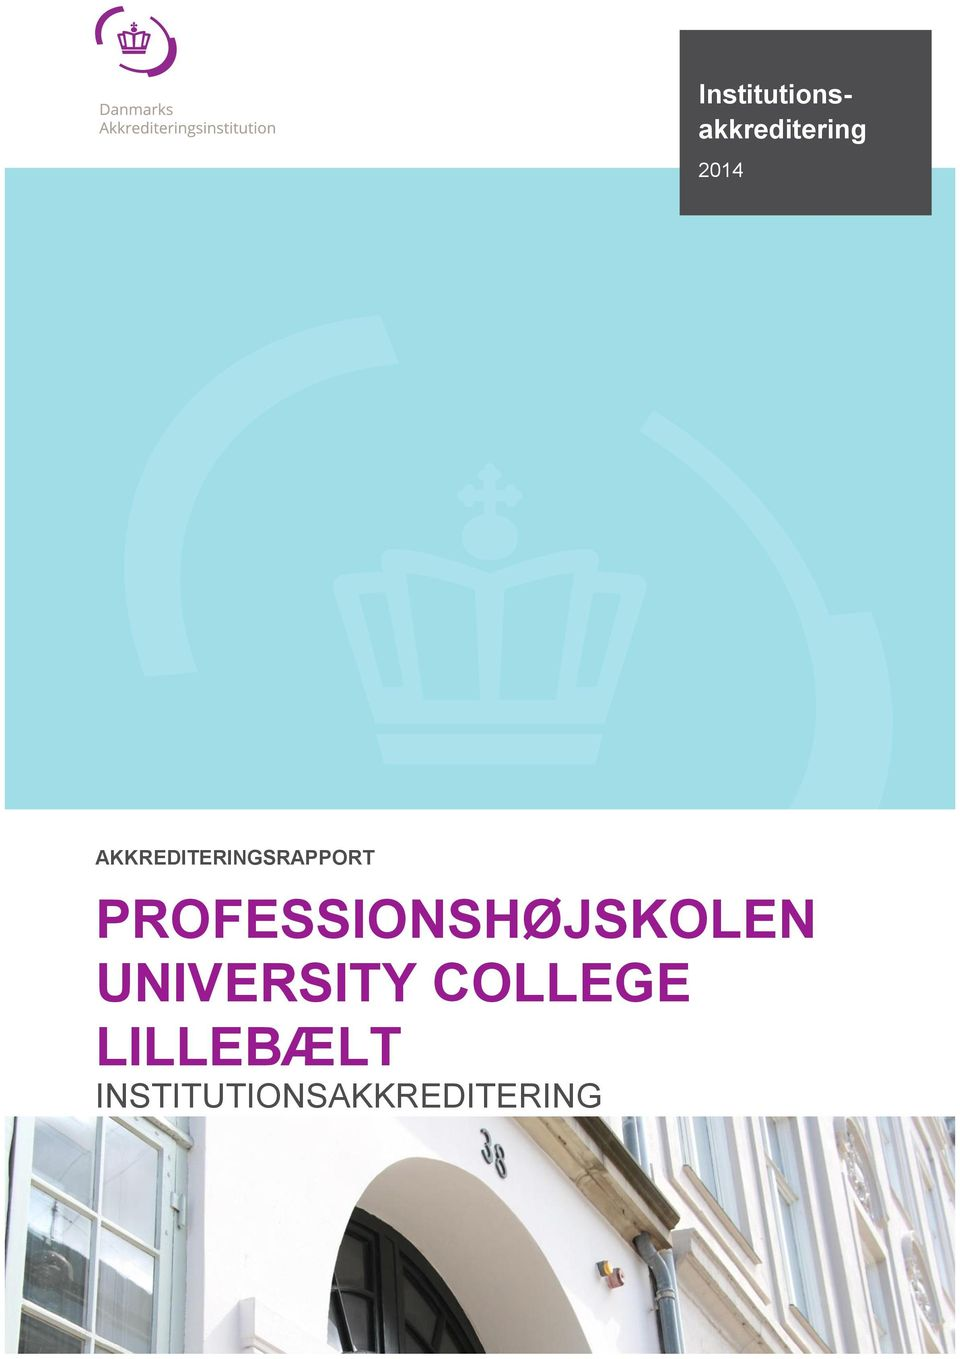 PROFESSIONSHØJSKOLEN UNIVERSITY